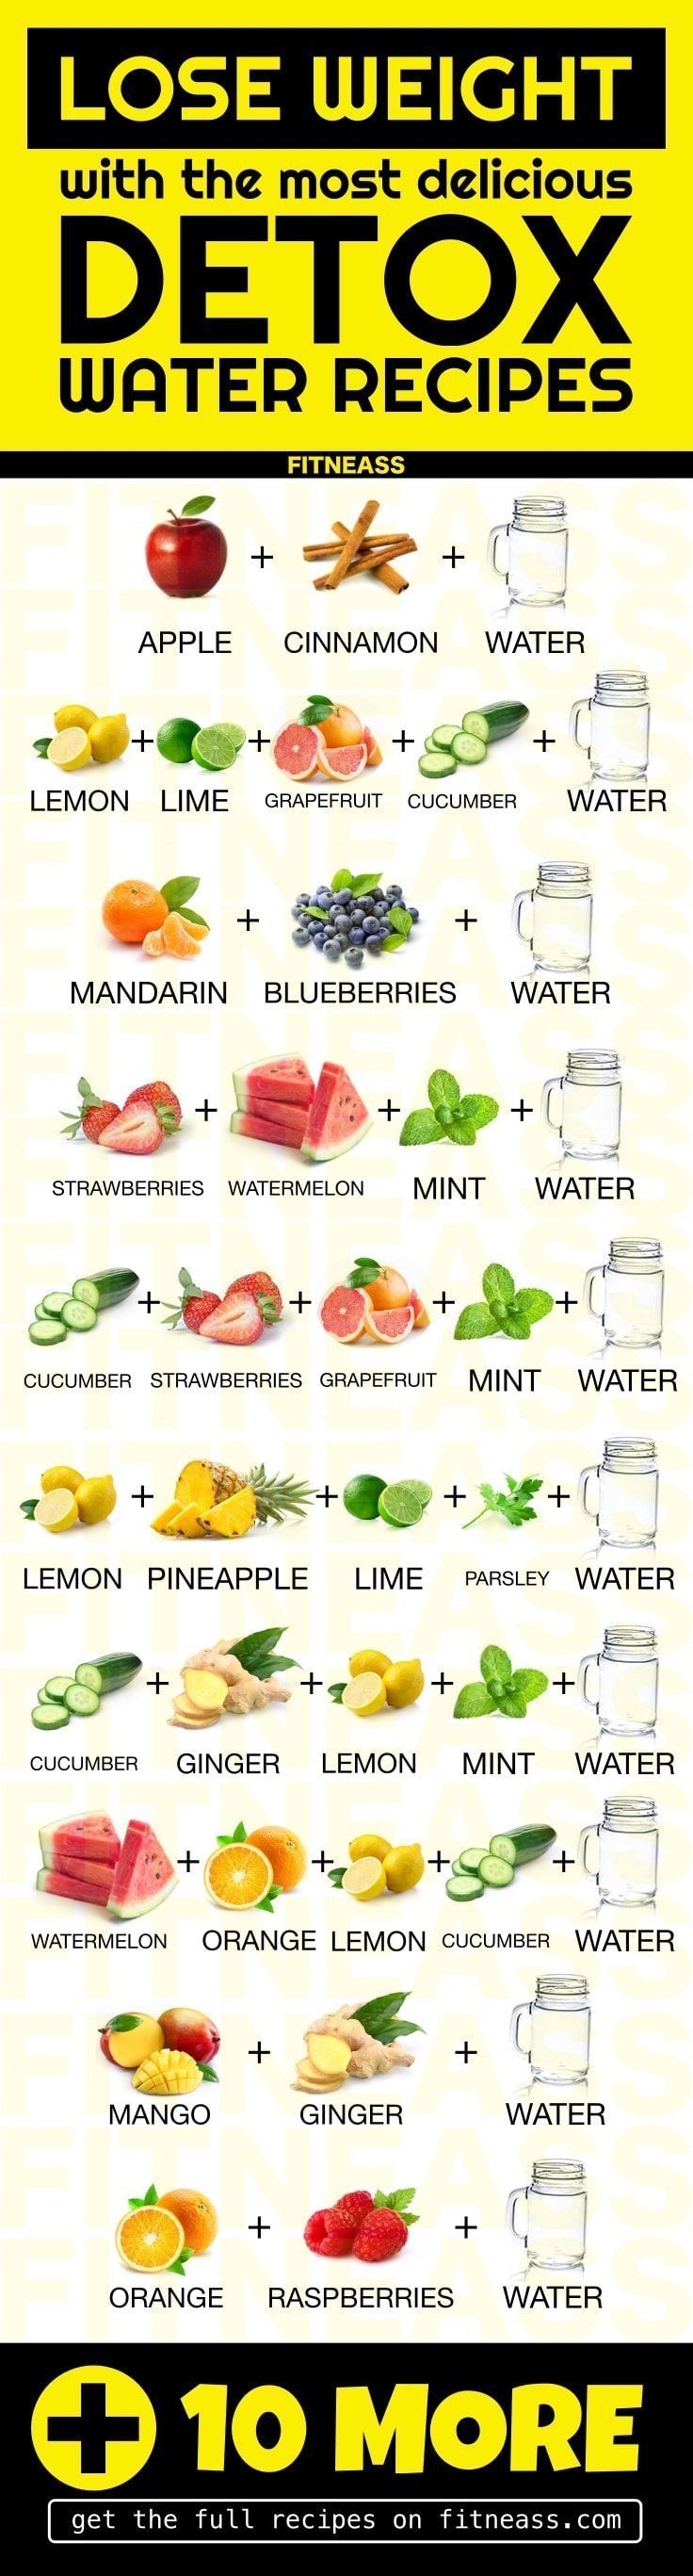 20 Detox Water Recipes To Lose Weight And Flush Out Toxins More about losing weight ...   - Gesundhe...